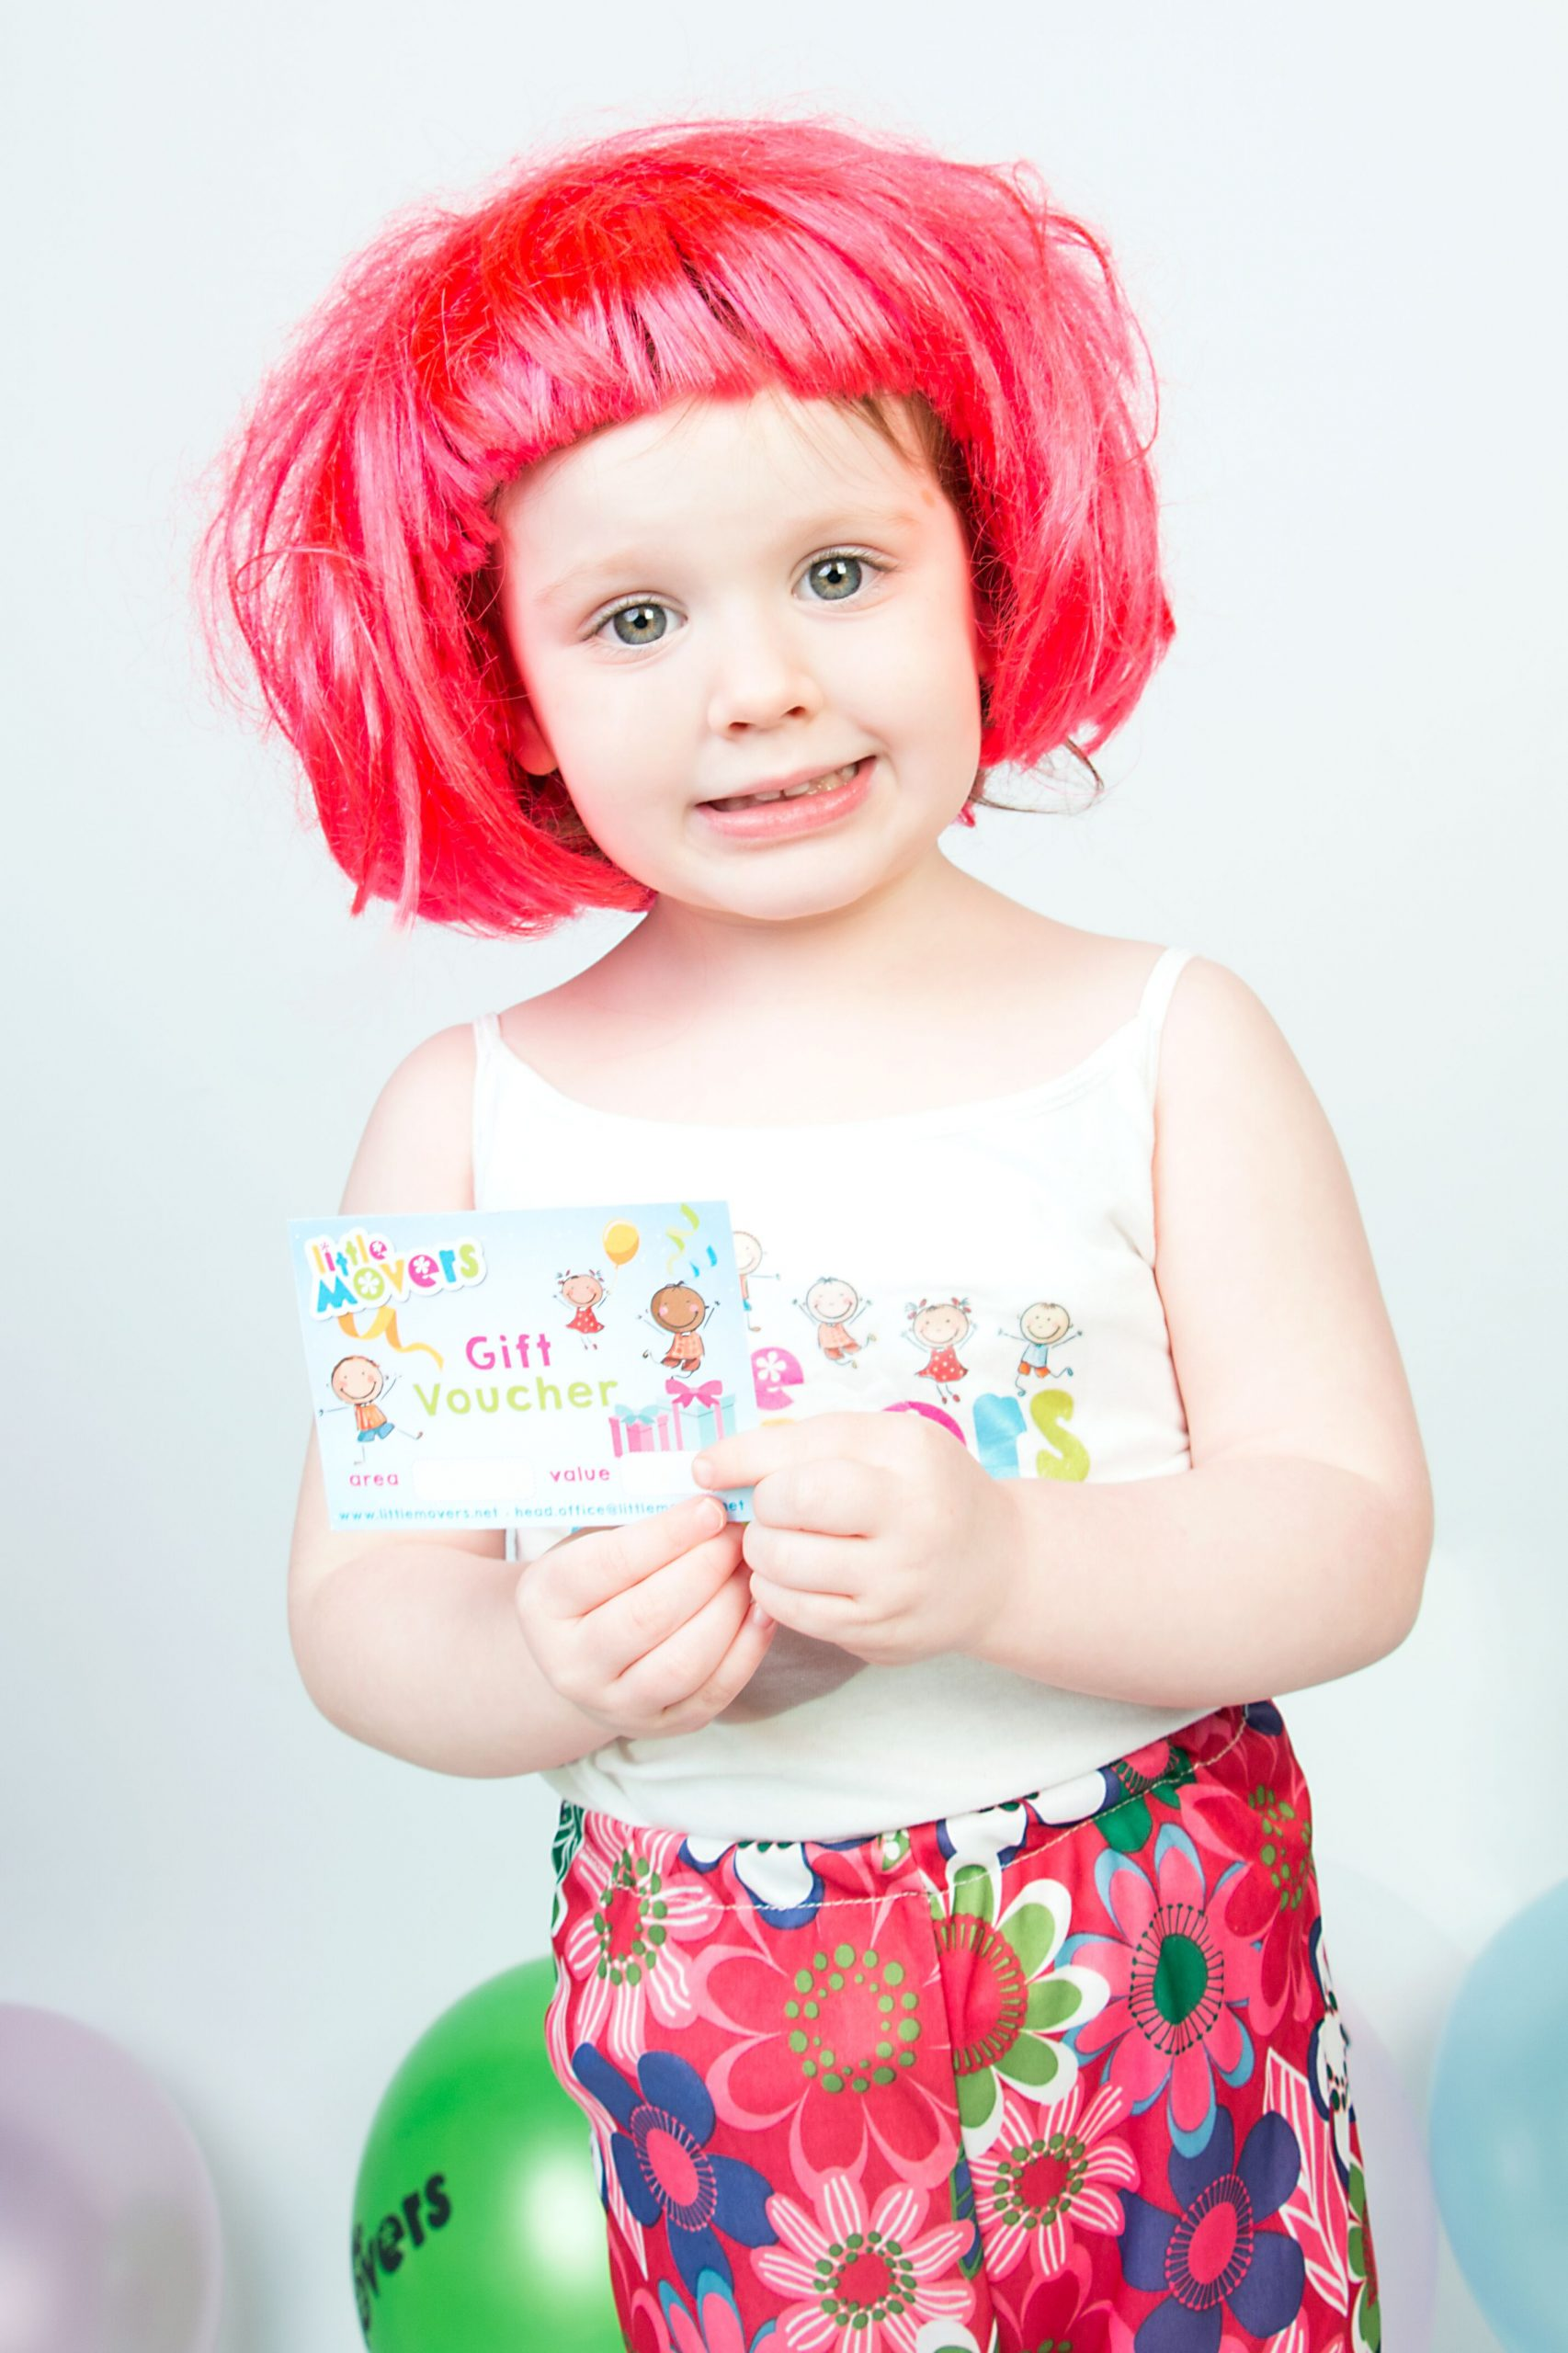 Little Movers Gift Voucher